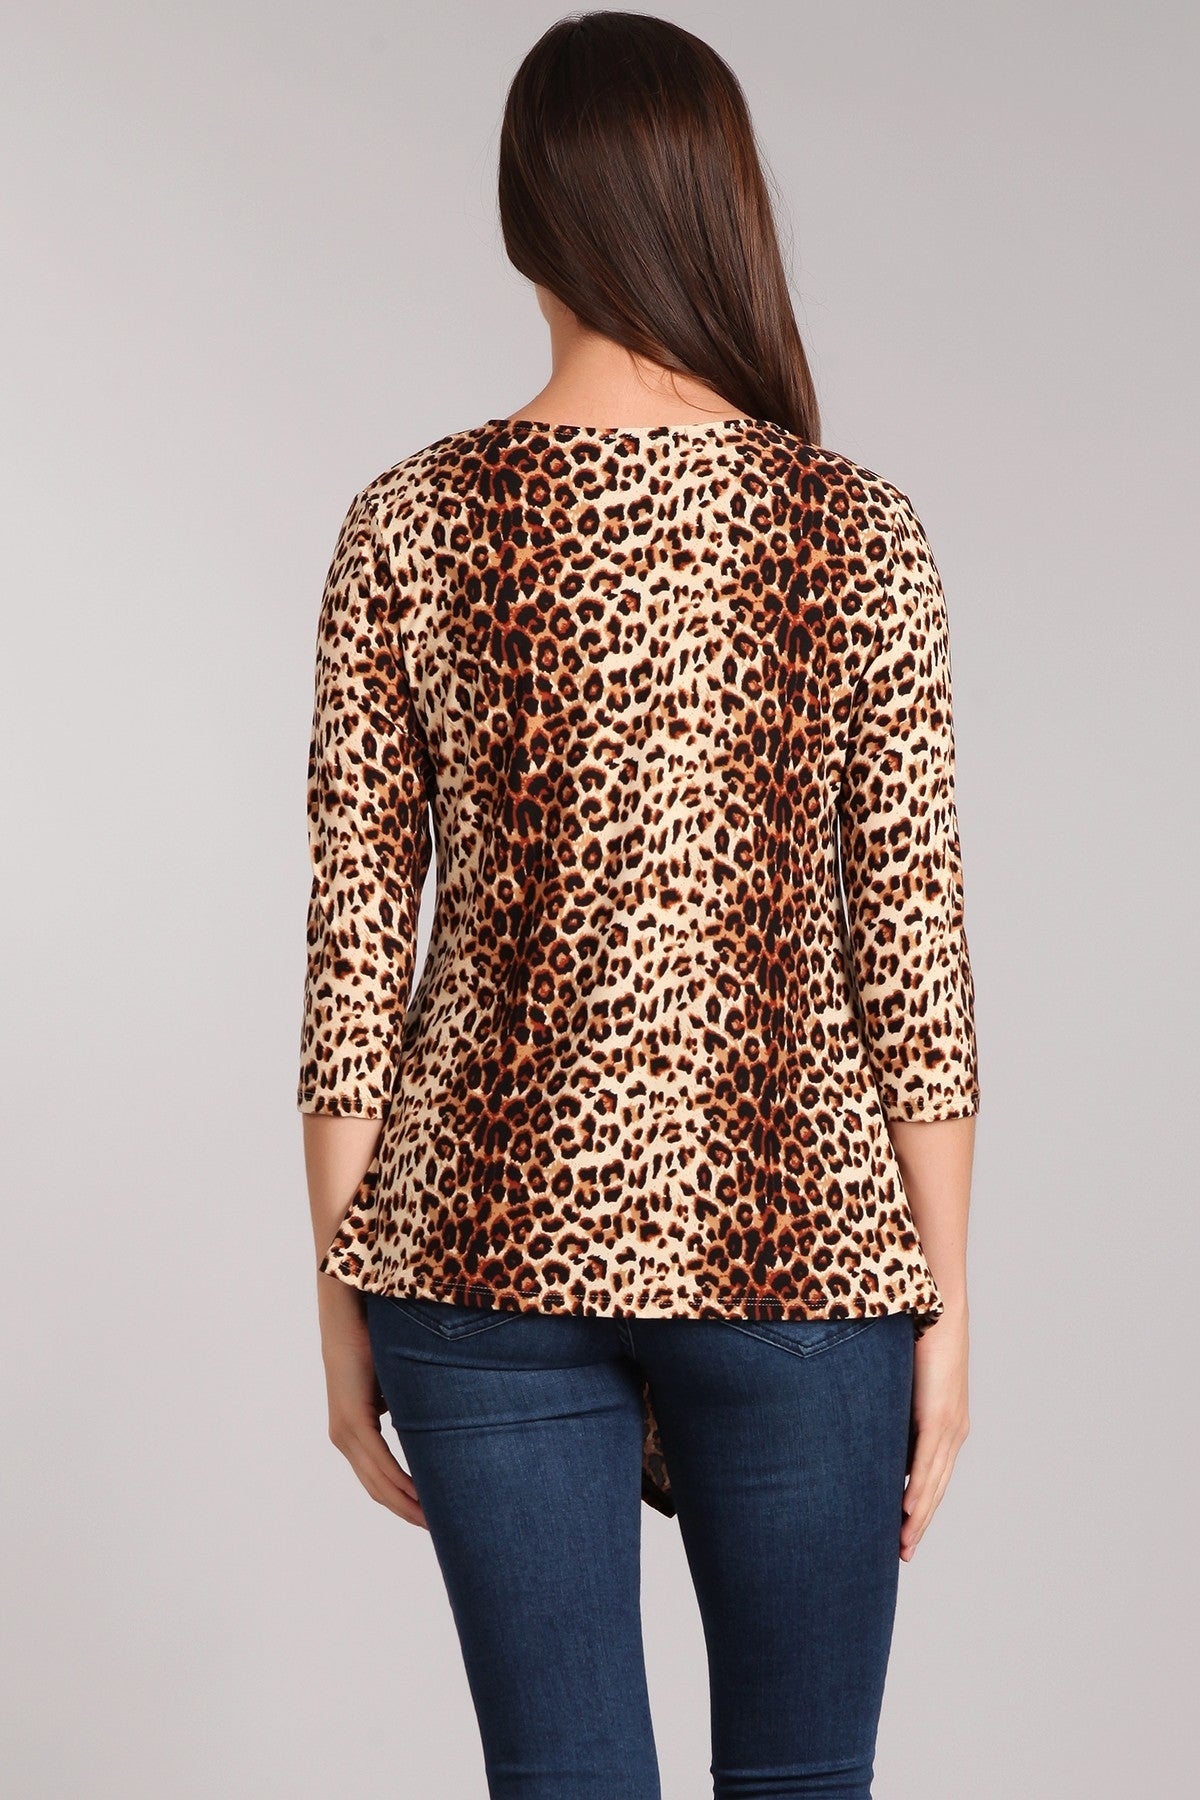 Long Sleeve Leopard Print Top